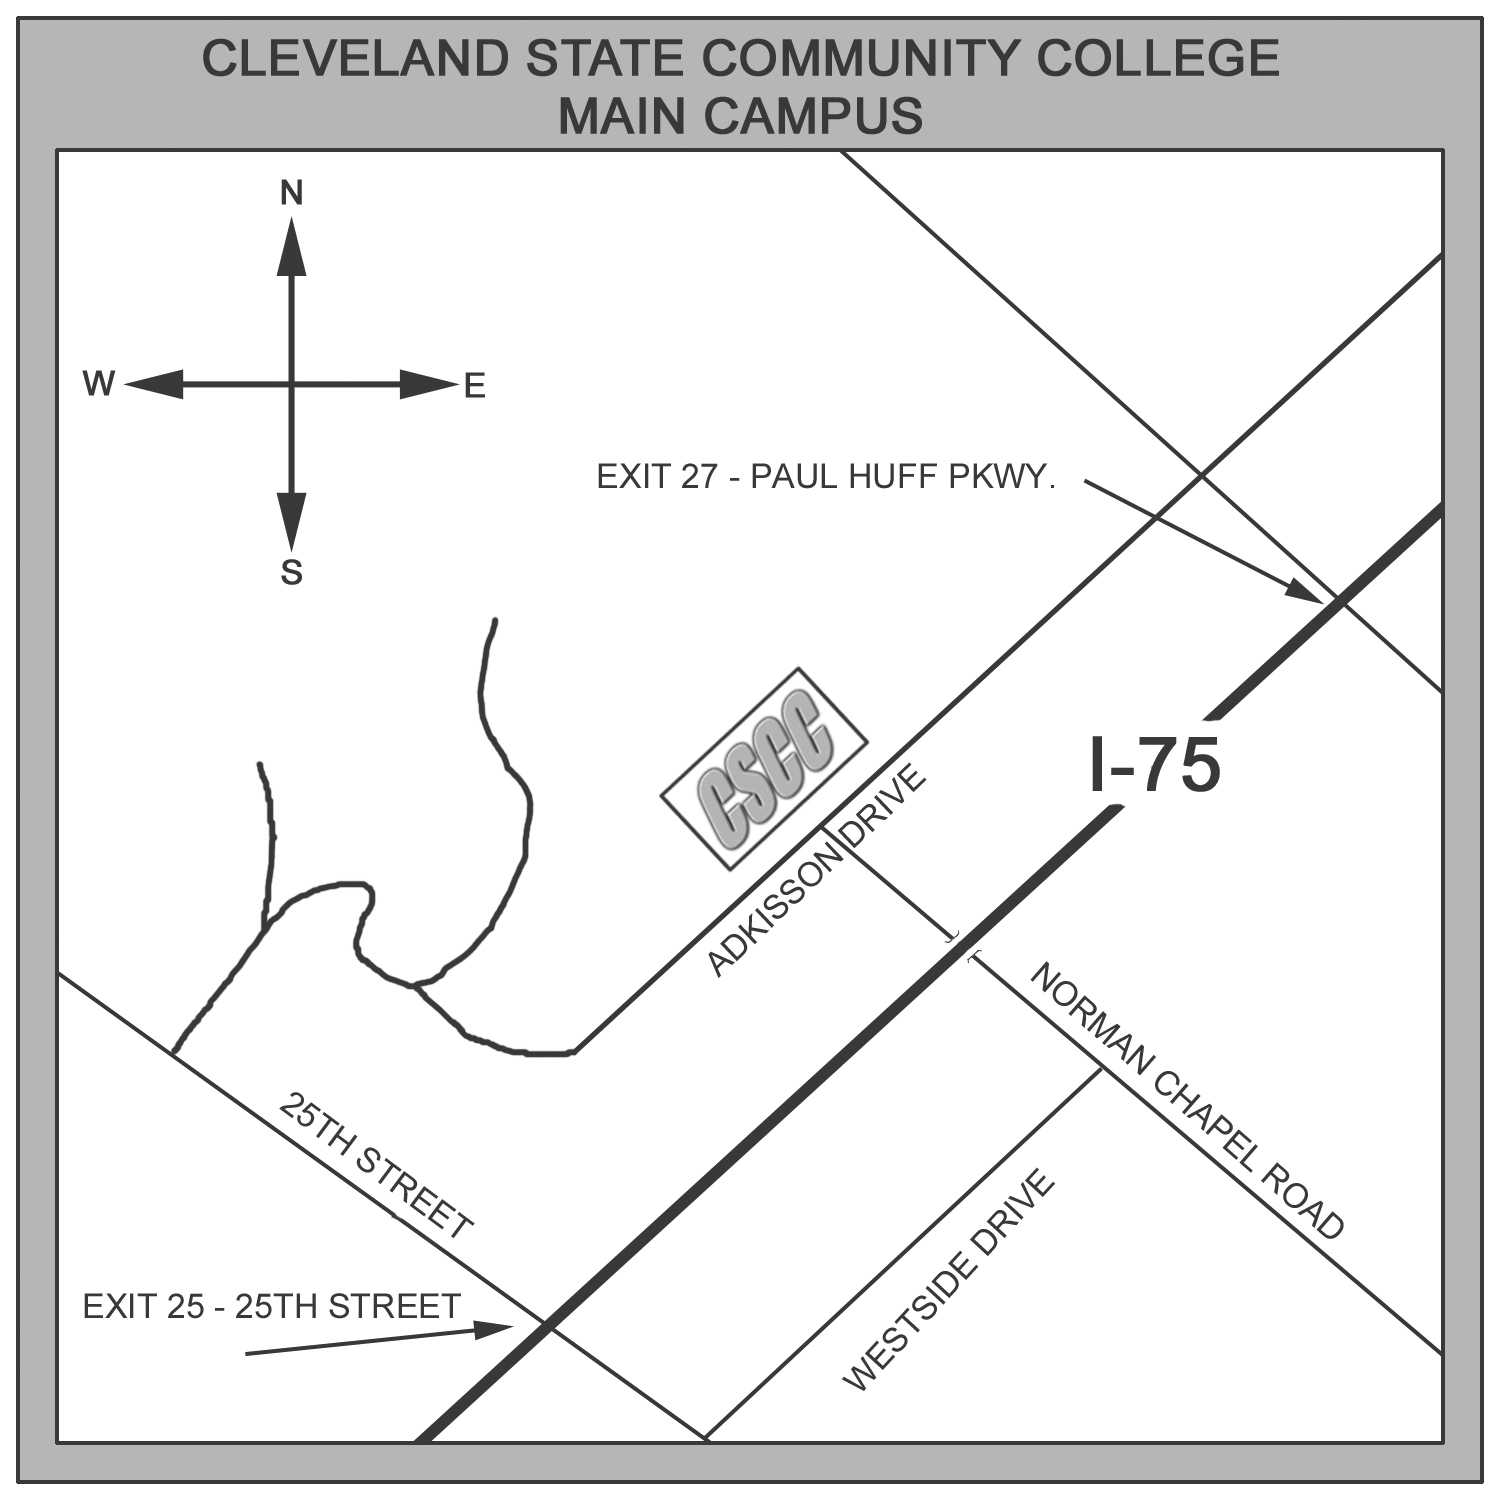 Campus Maps - Cleveland State Community College - Acalog ACMS™